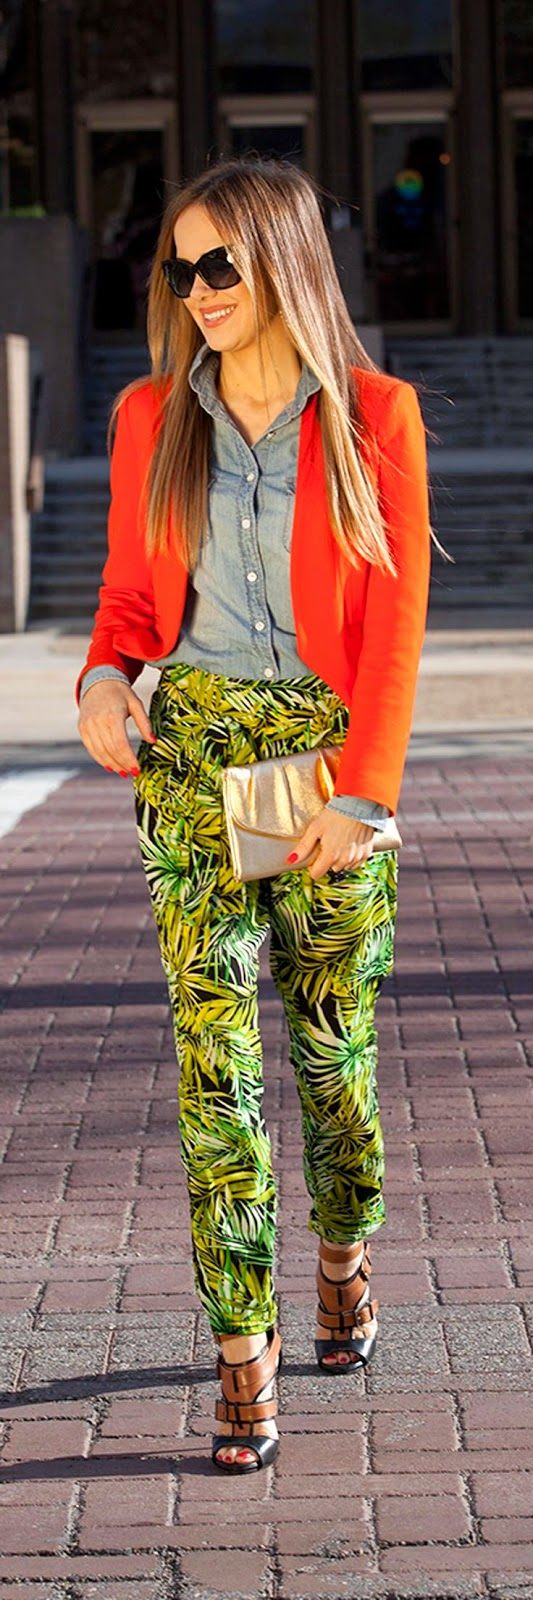 forever21 pants, jcrew top, zara blazer, shoe mint sandals, vintage bad and Dolce and Gabbana sunglasses Spring street style